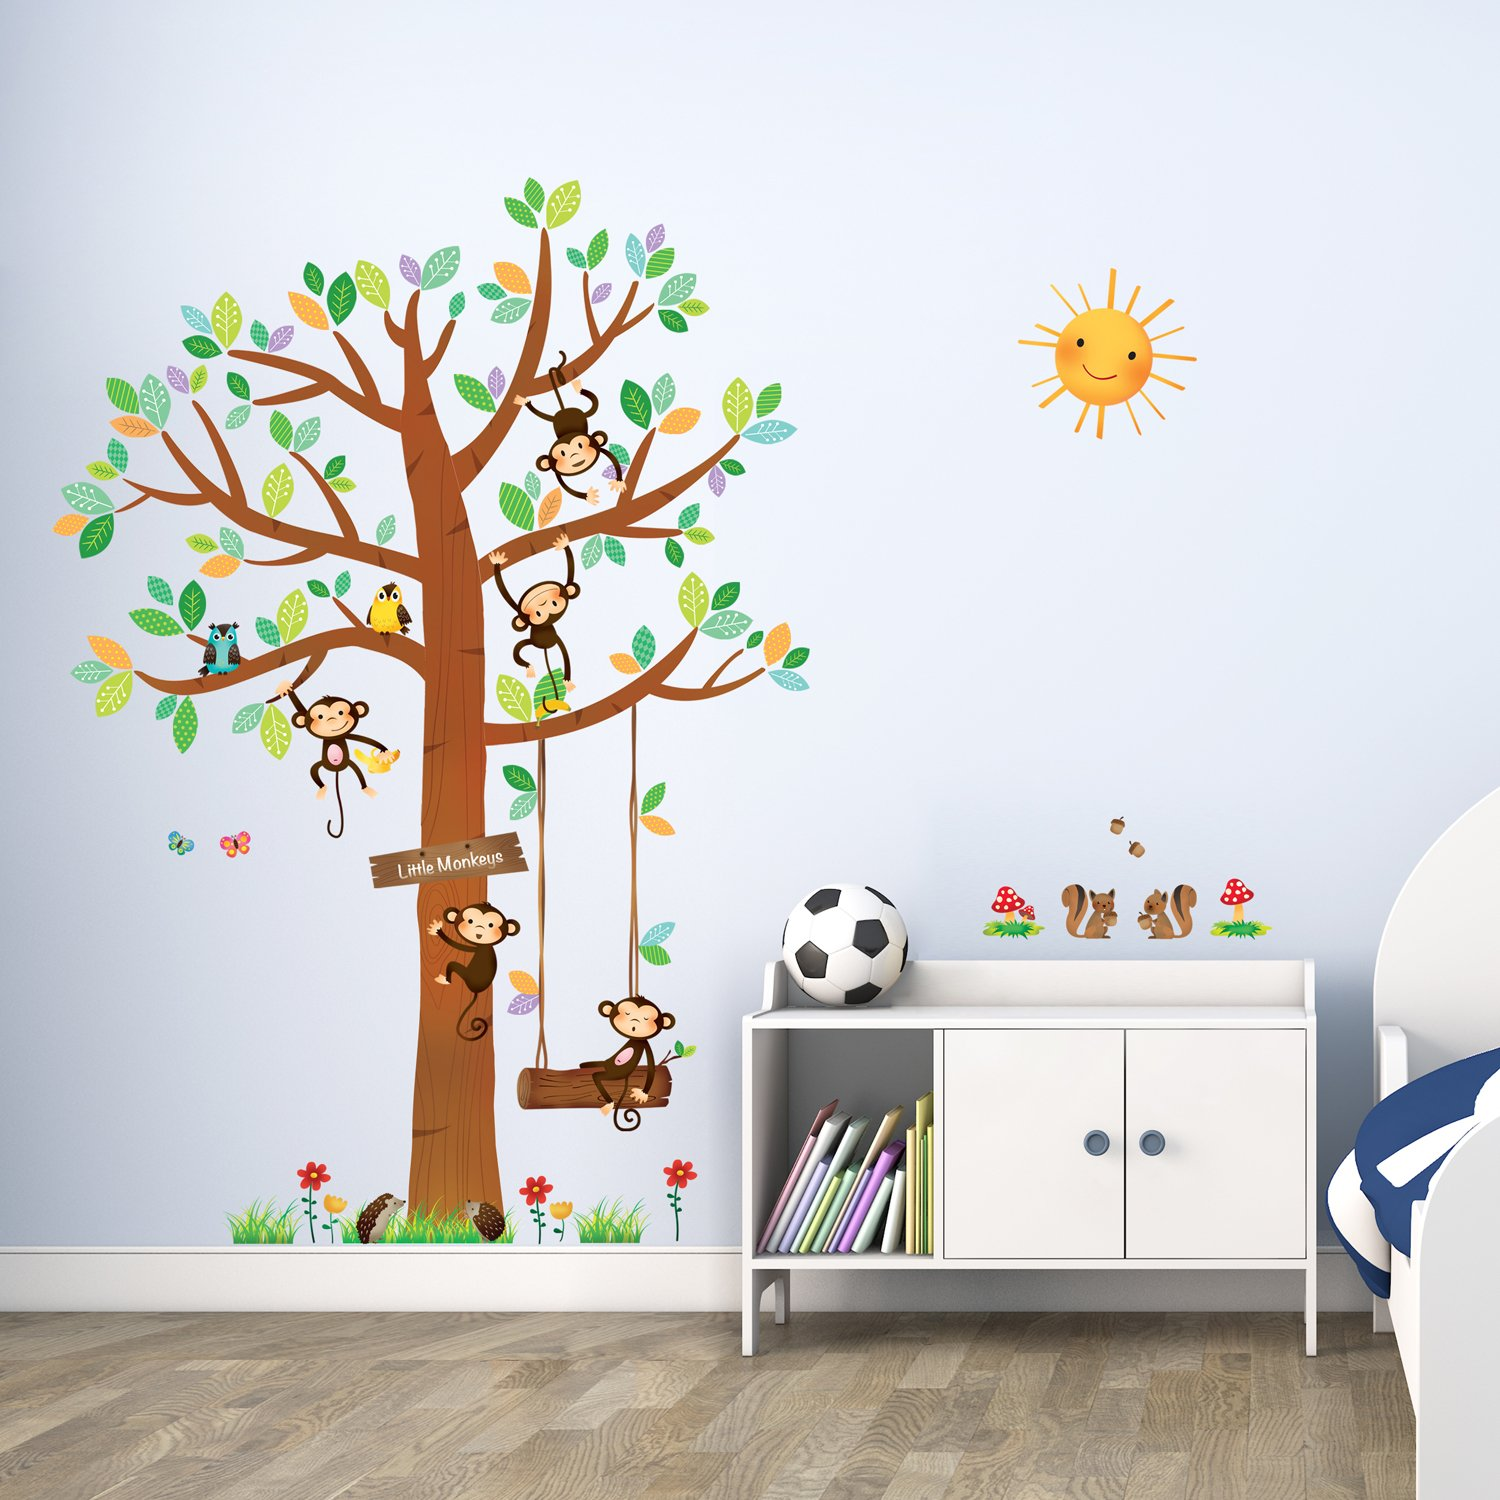 4 Cute Monkeys Wall Decals Sticker Nursery Decor Mural: Amazon.com: Decowall DW-1206 Jungle Peel & Stick Nursery